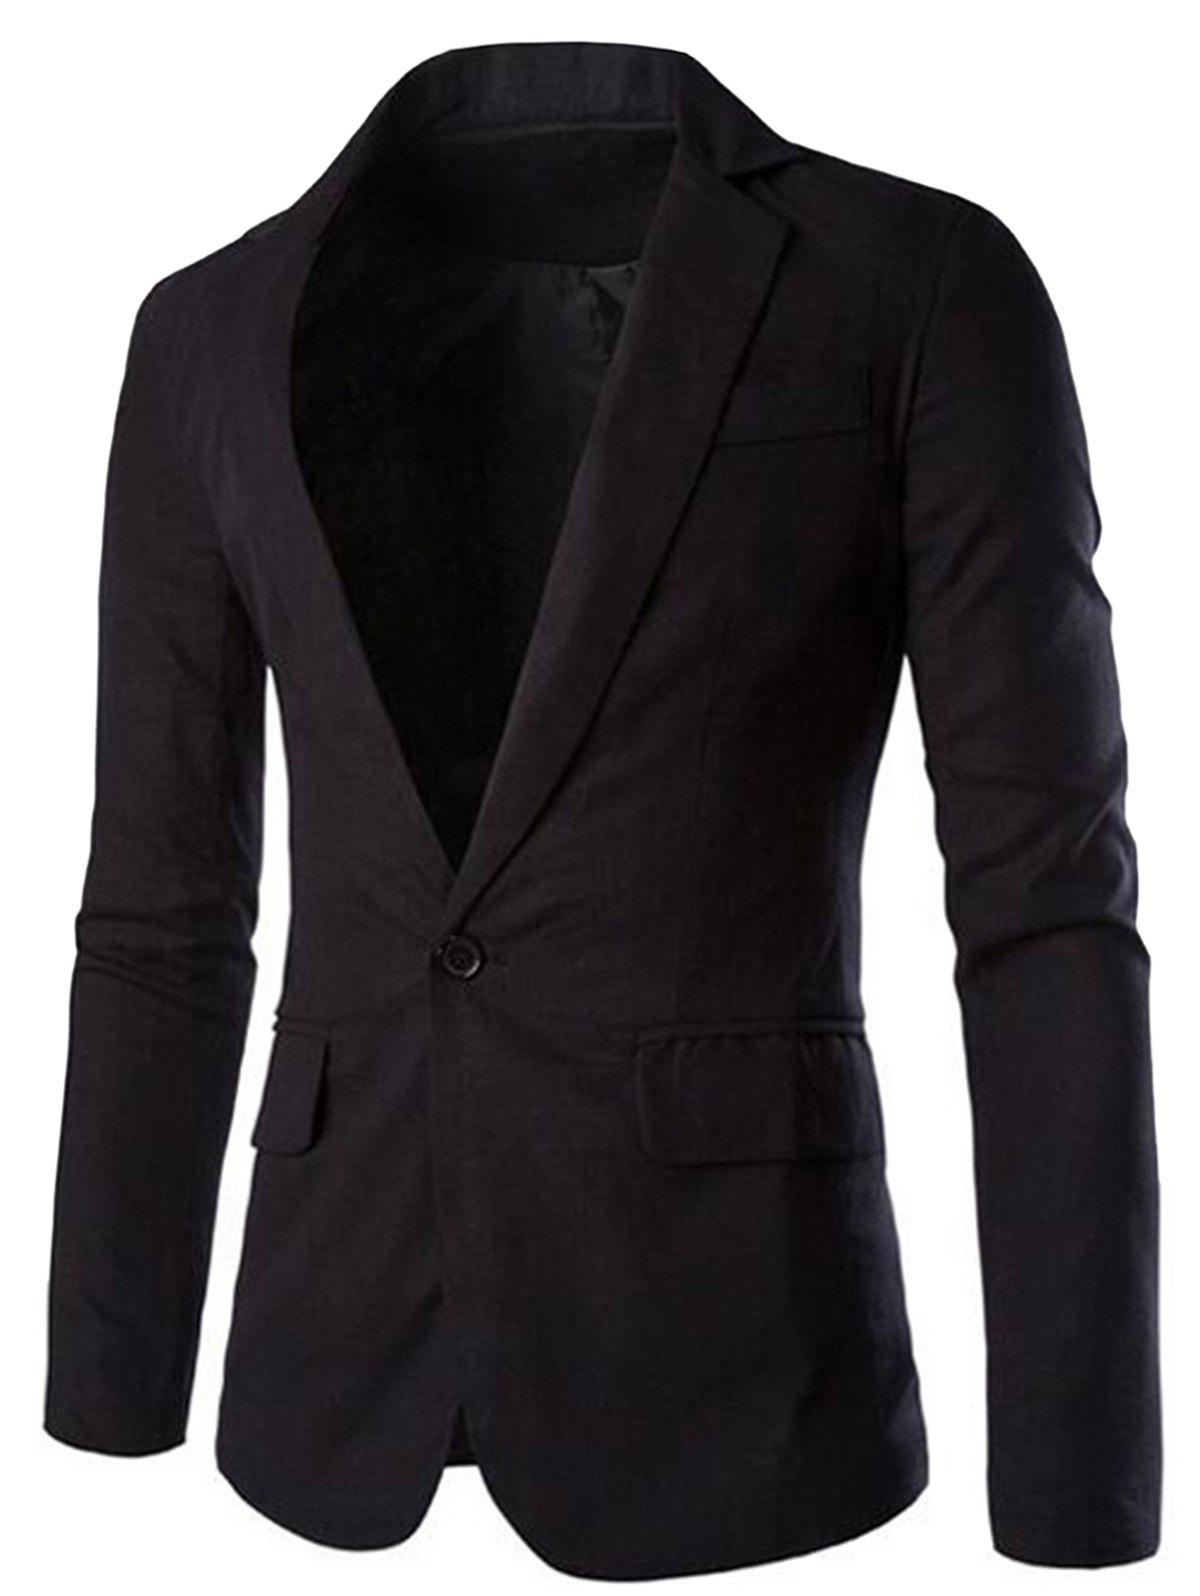 Discount Lapel Thin Casual Blazer